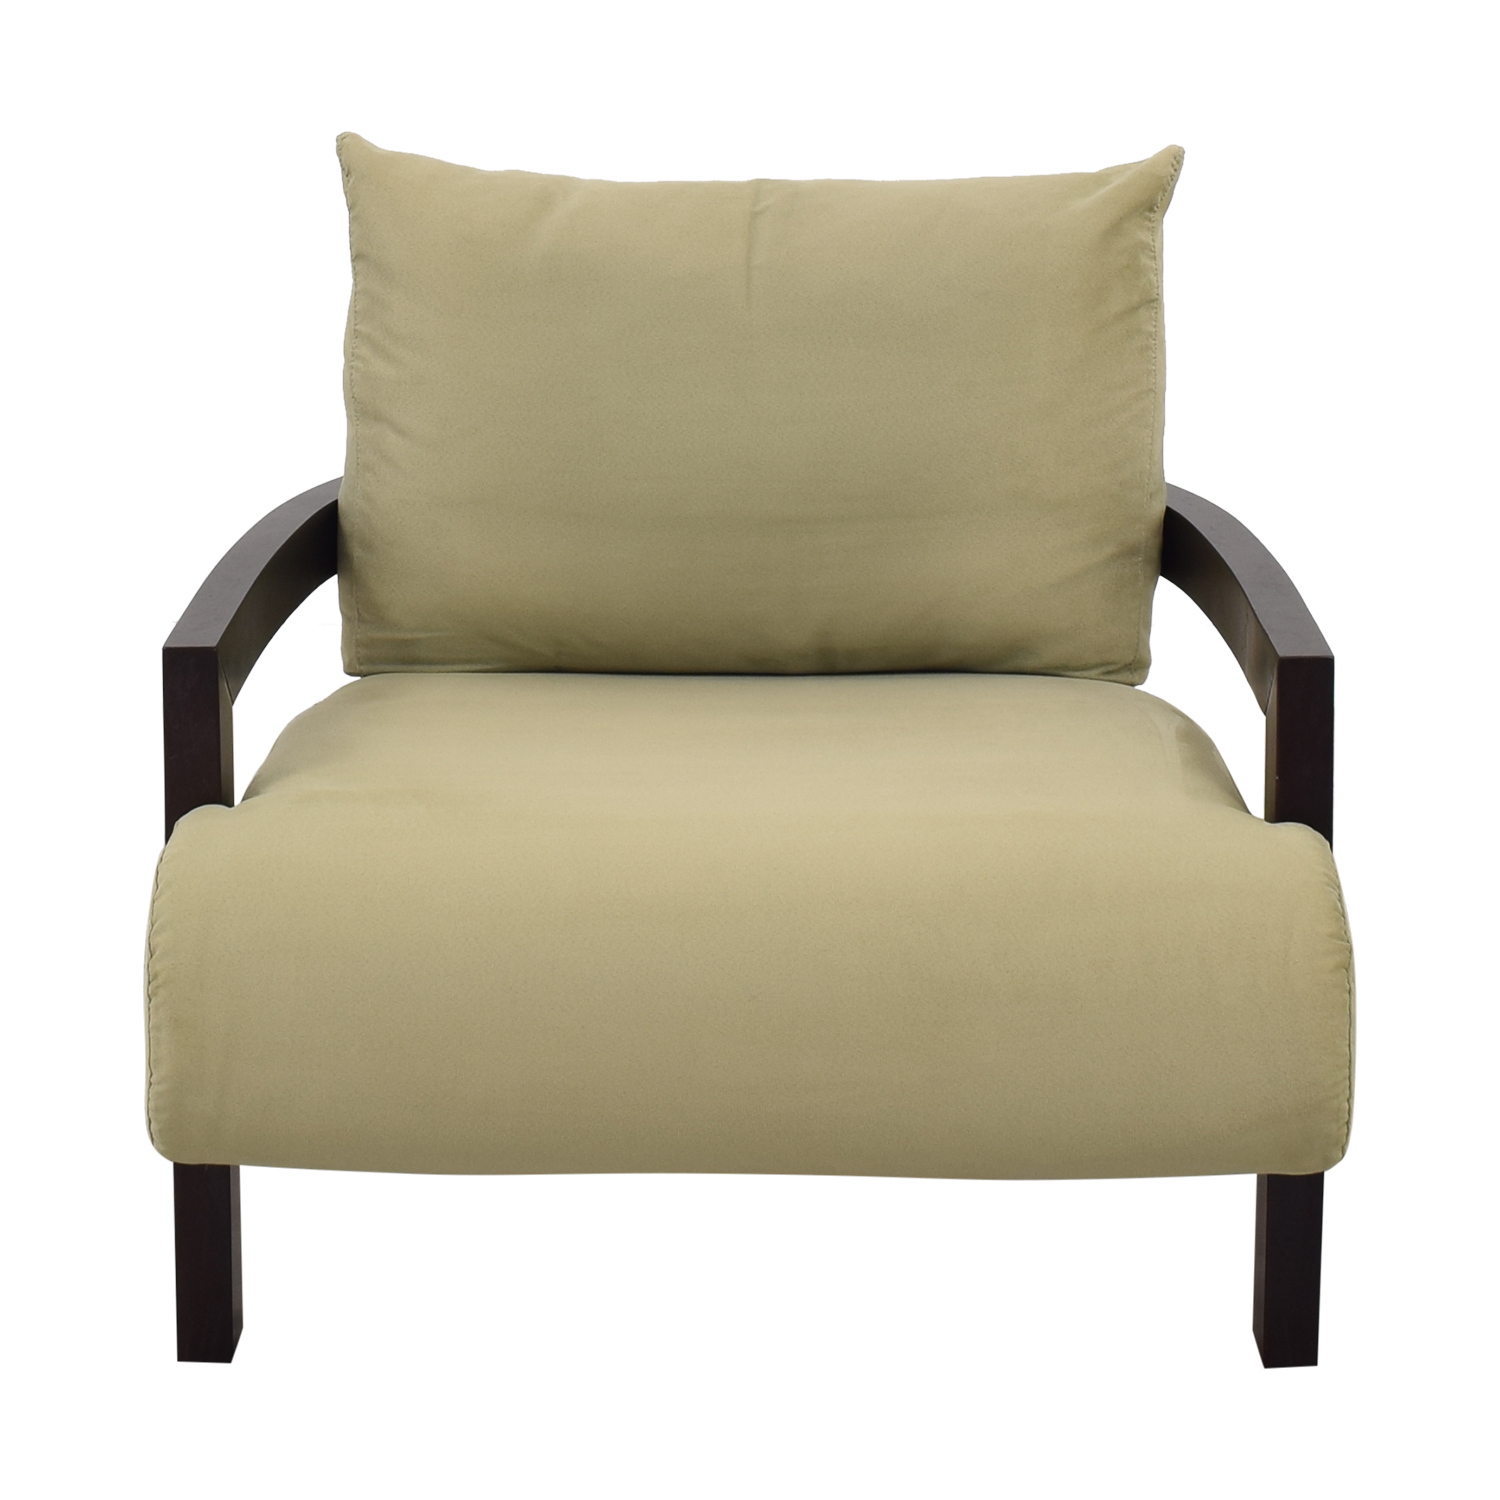 Nicoletti Home Nicoletti Home Accent Chair second hand